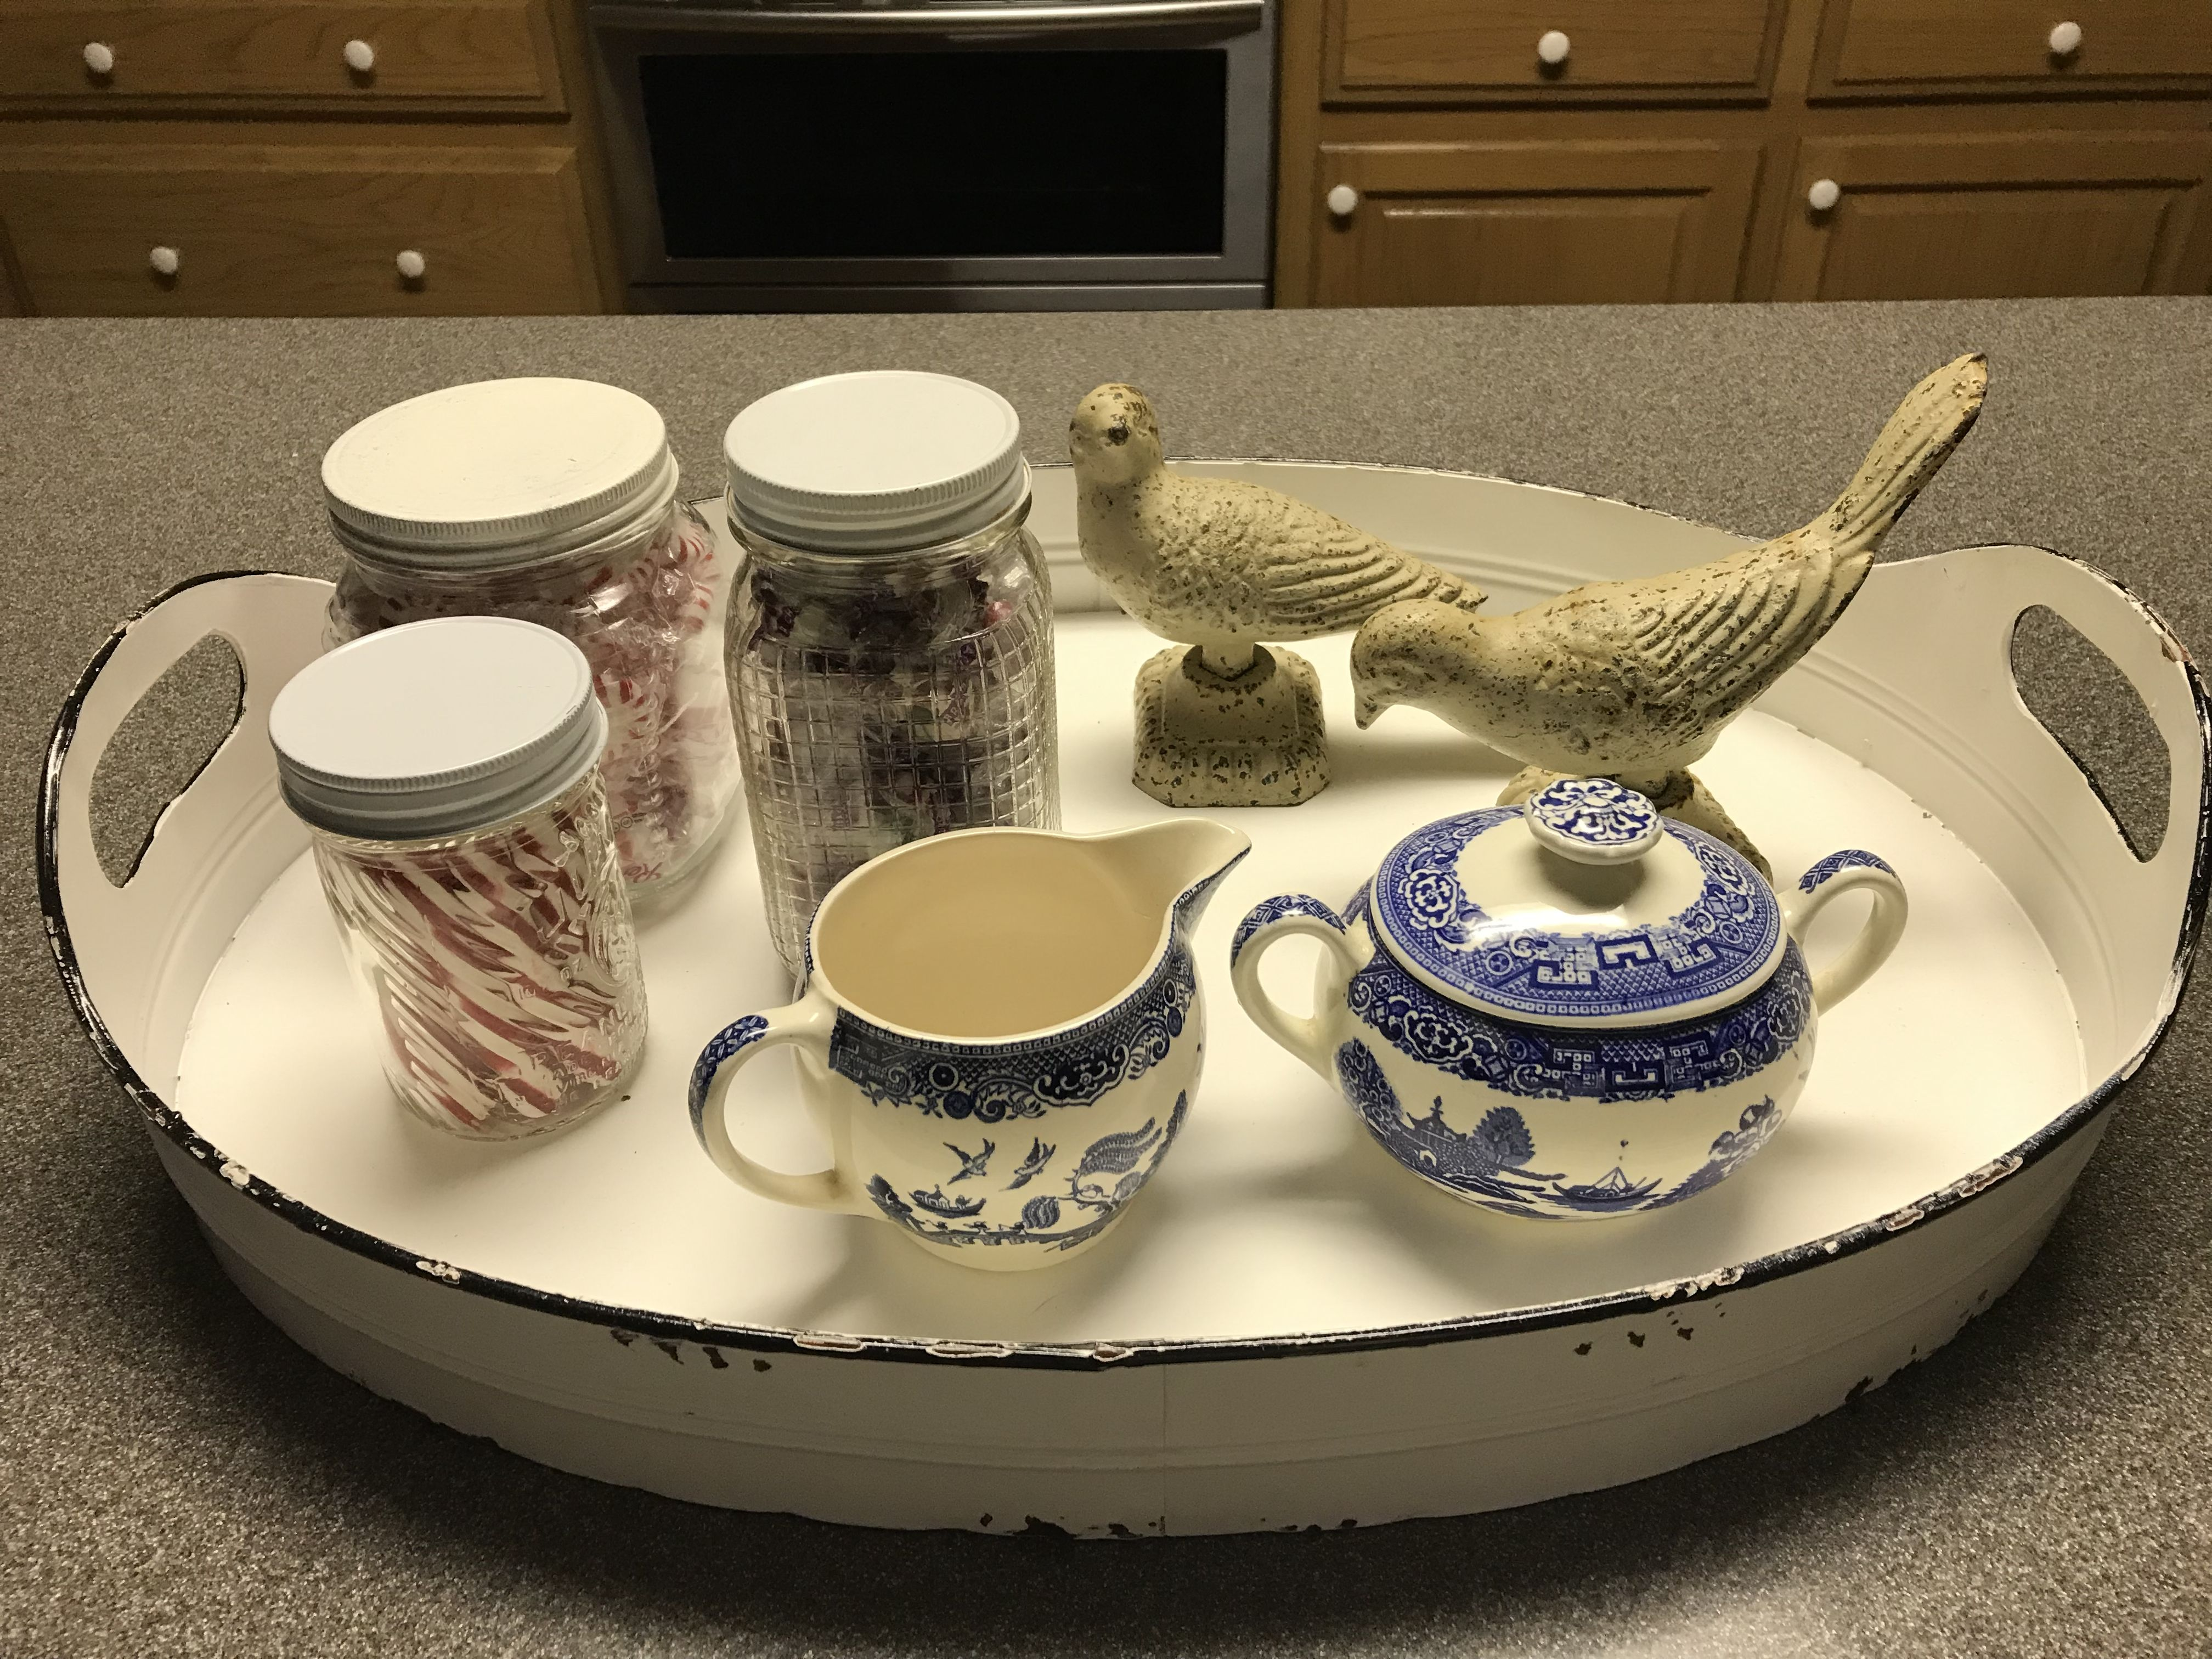 A Lovely White Tray On The Kitchen Counter Adds Color And Interest White Tray Sugar Bowl Set Bowl Set